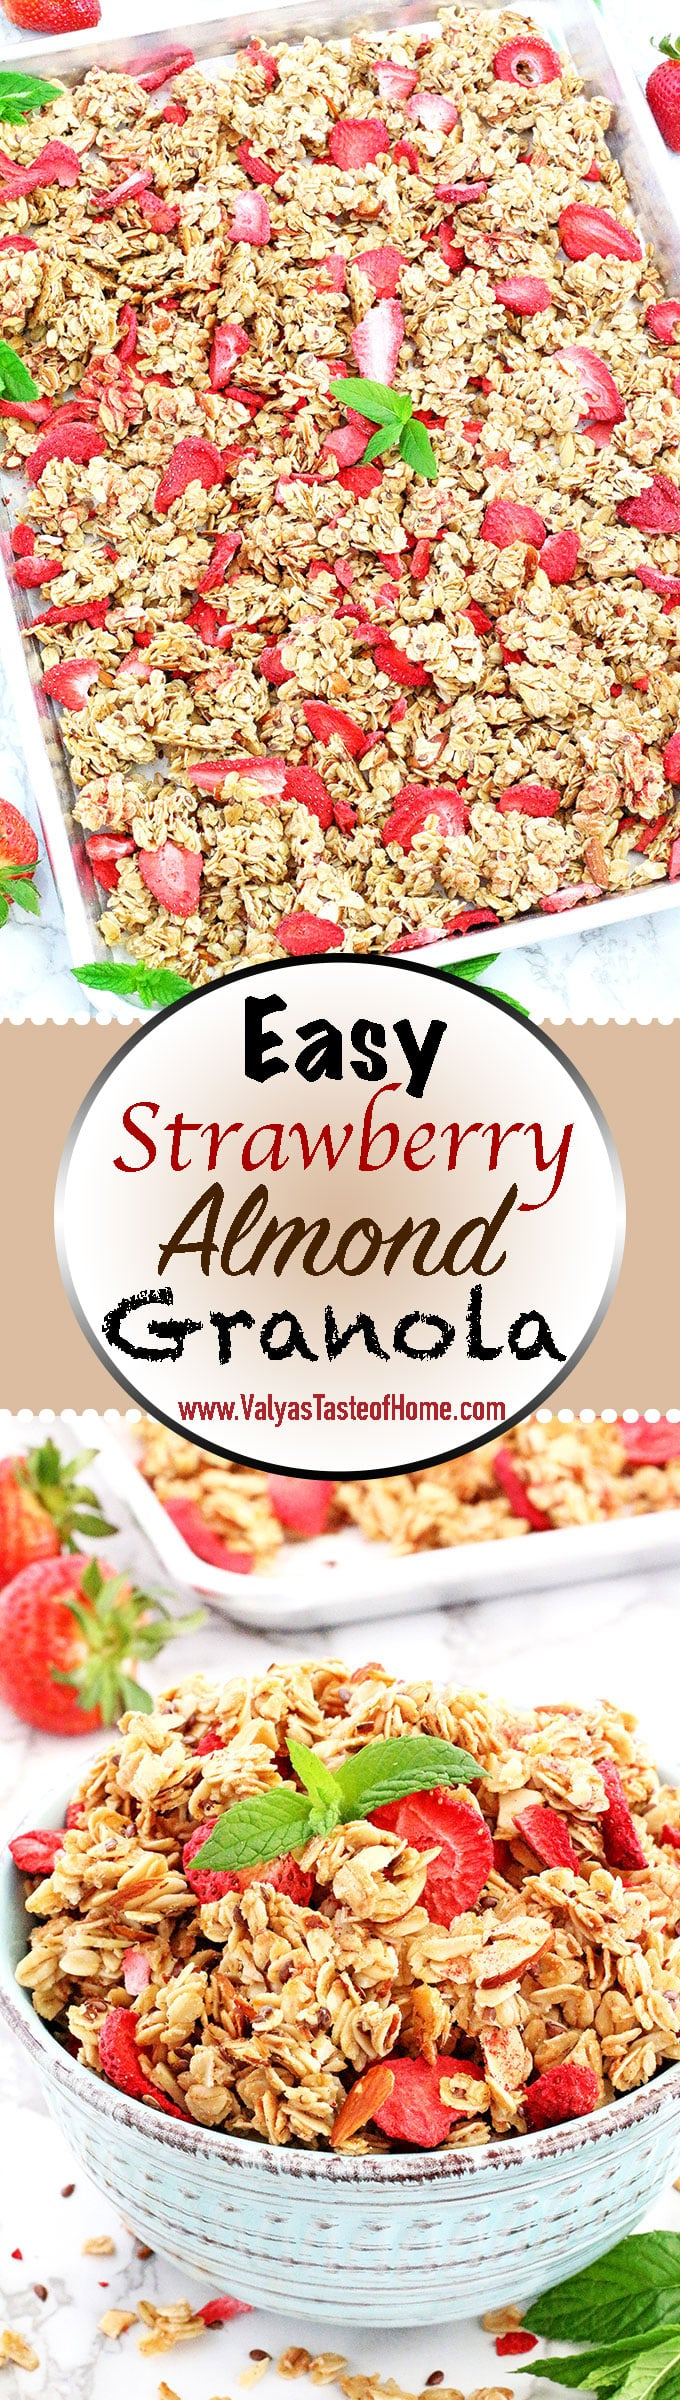 The title says it all! This Easy Strawberry Almond Granola Recipe is truly super easy and quick to make! It's so much healthier, cleaner, and tastier when made at home than a store bought. But seriously, what is there not to love about this granola when almonds and strawberries pair so well together! ;)